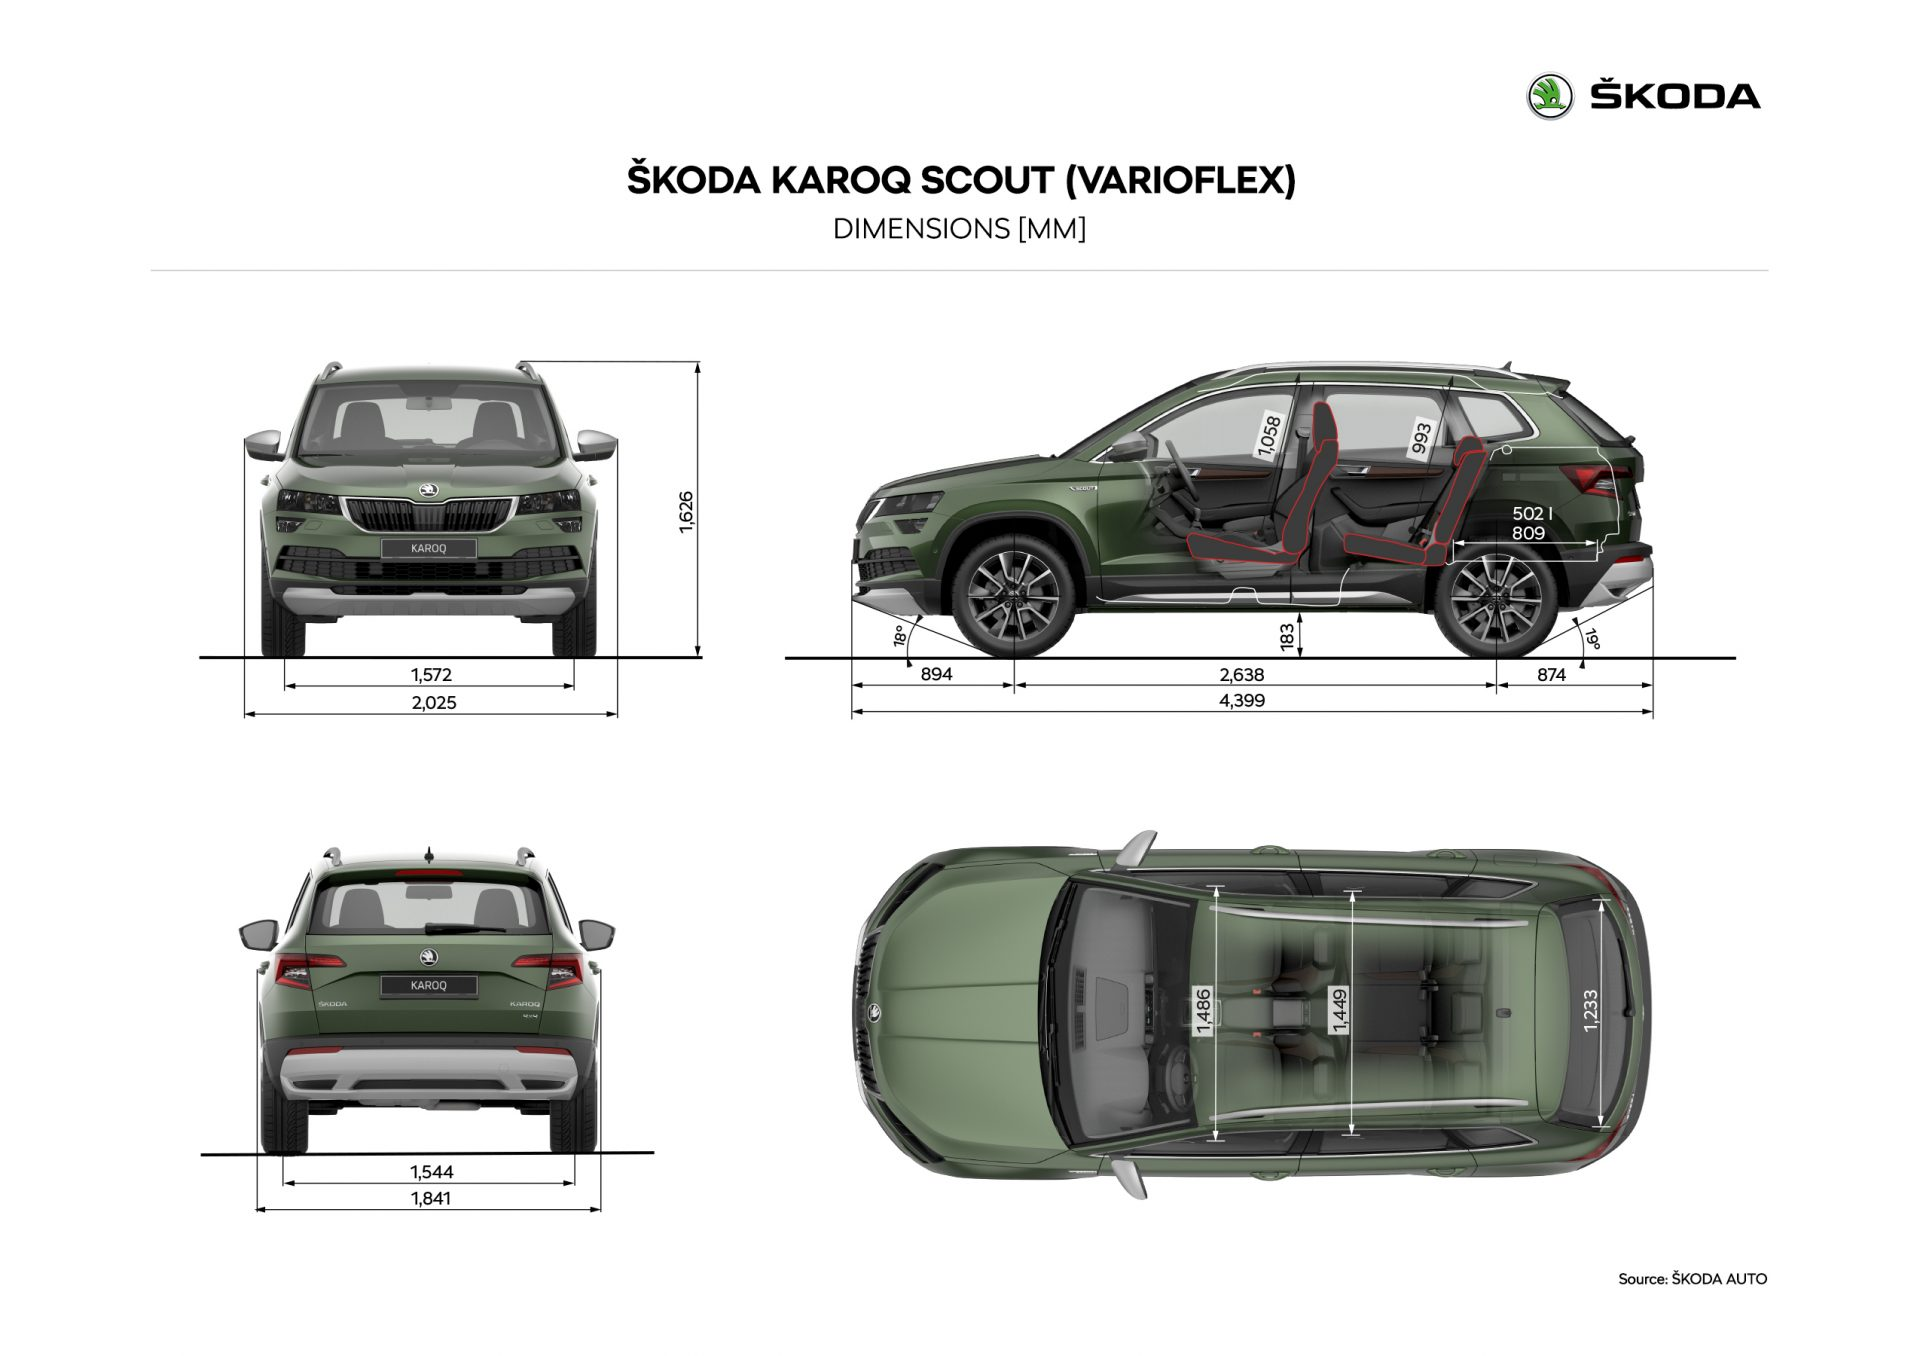 skoda karoq sportline e scout 2019 presentazioni automobili e nuovi modelli autopareri. Black Bedroom Furniture Sets. Home Design Ideas